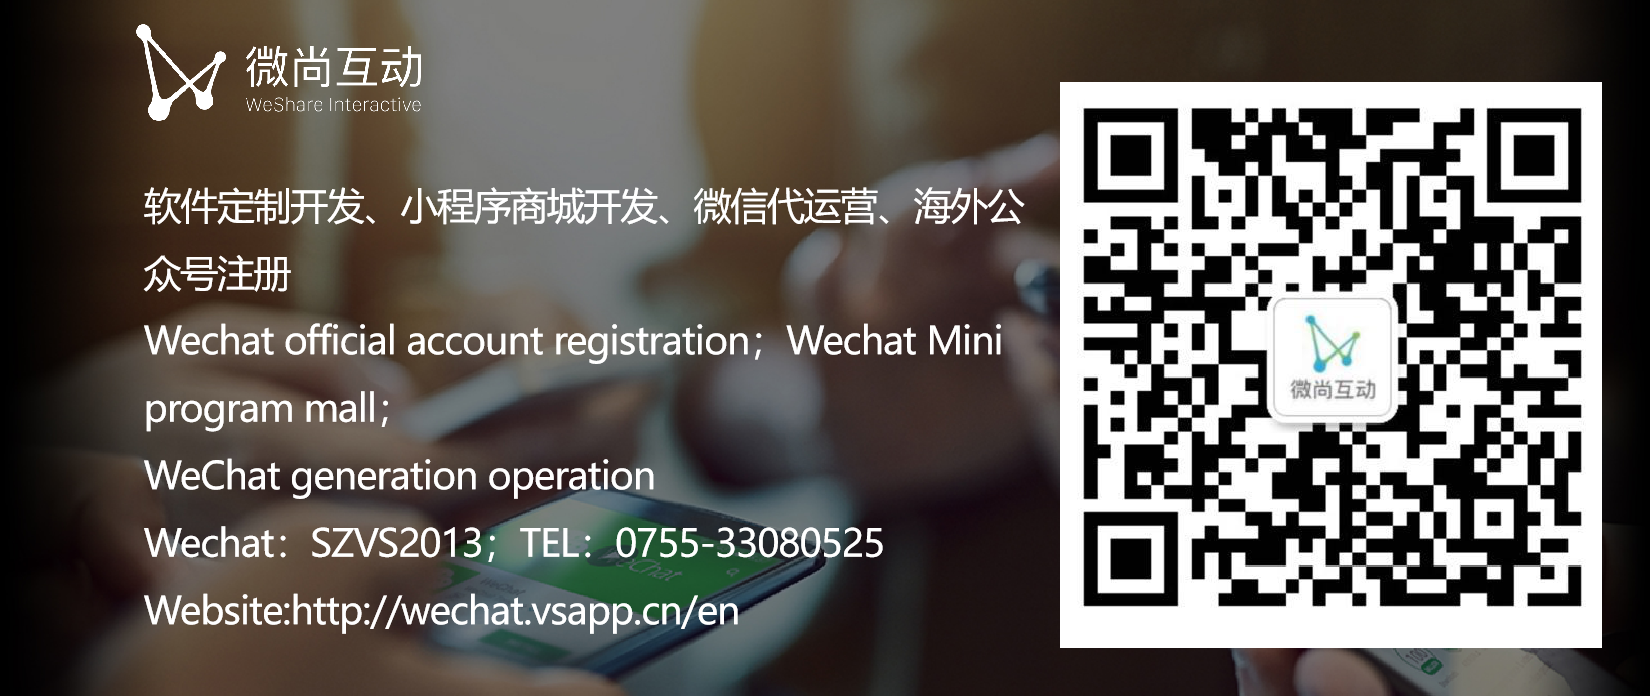 wechat mall wechat account.png